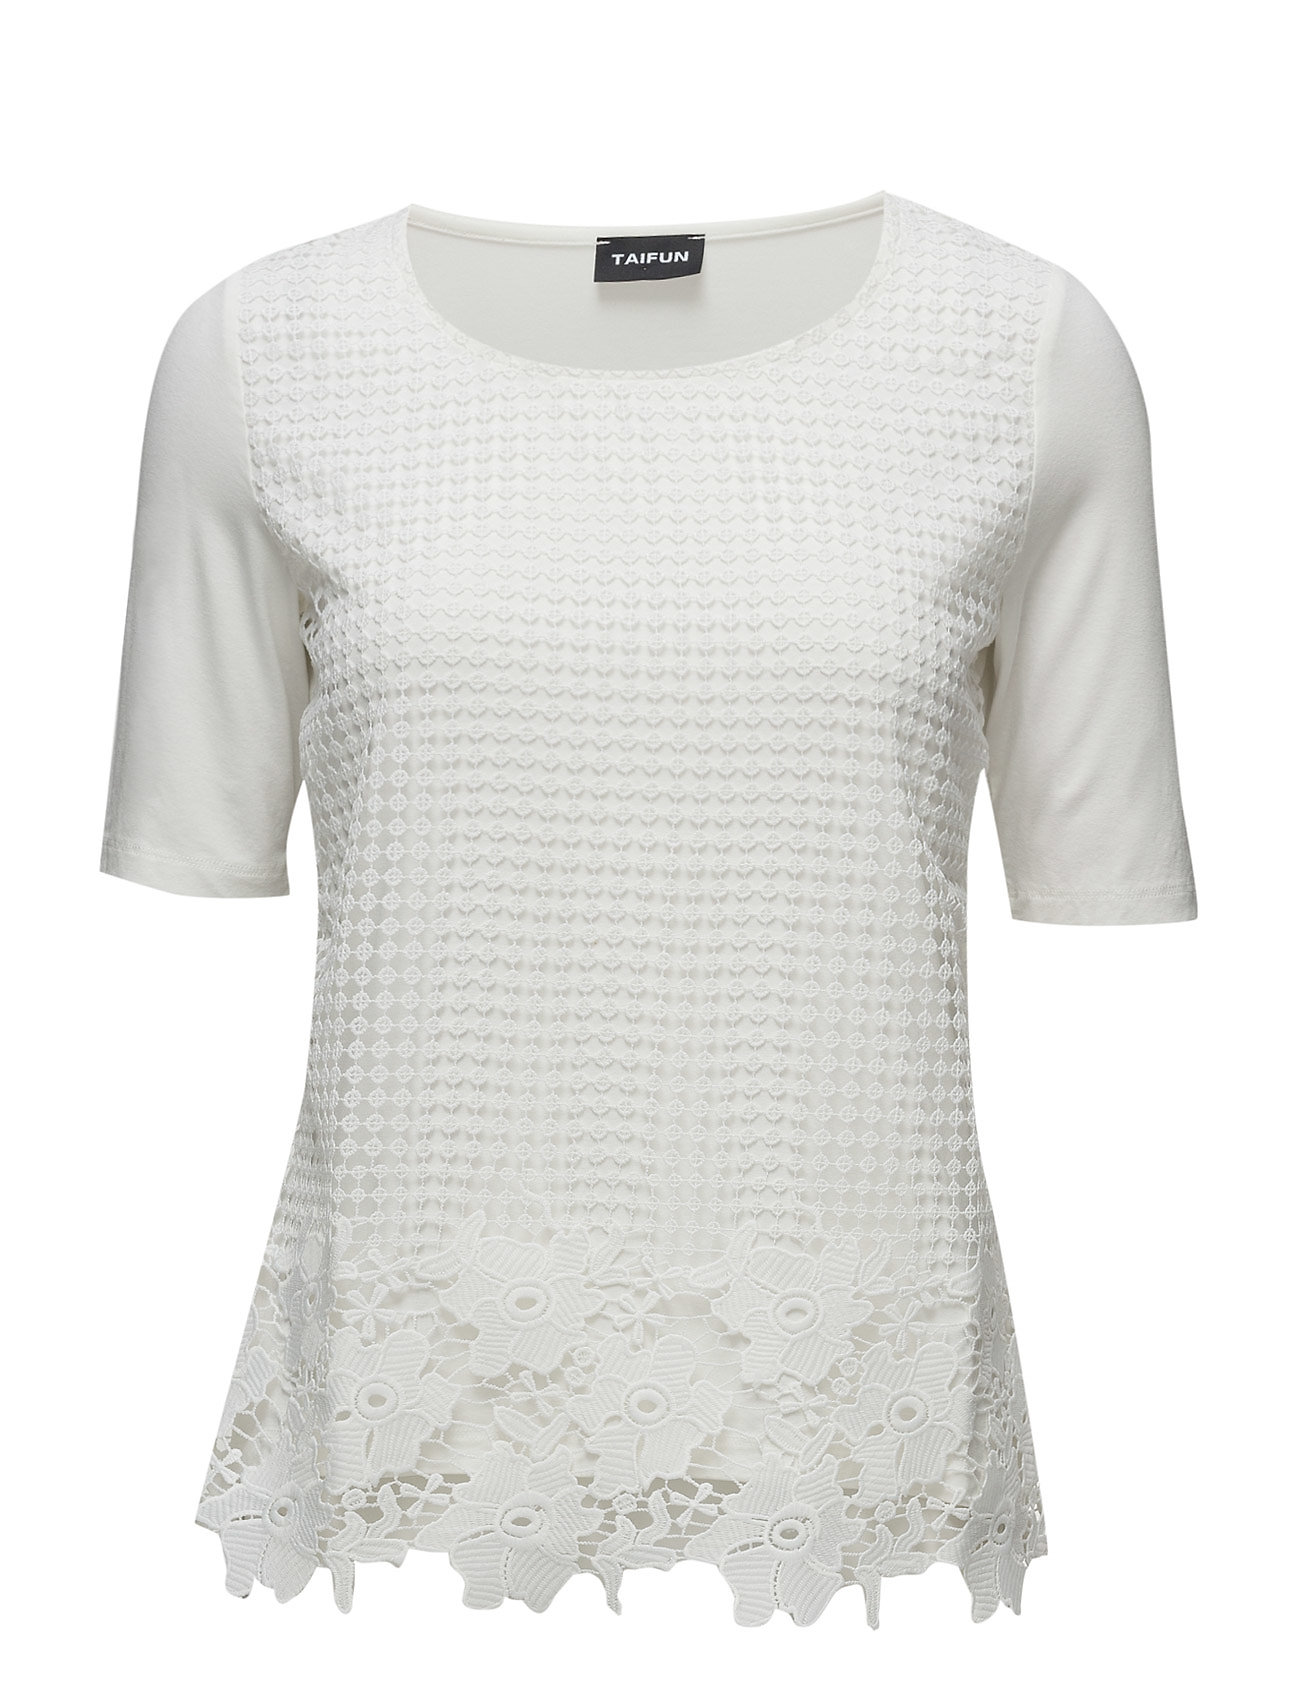 T-Shirt Short-Sleeve Taifun Kortærmede til Damer i Off-White